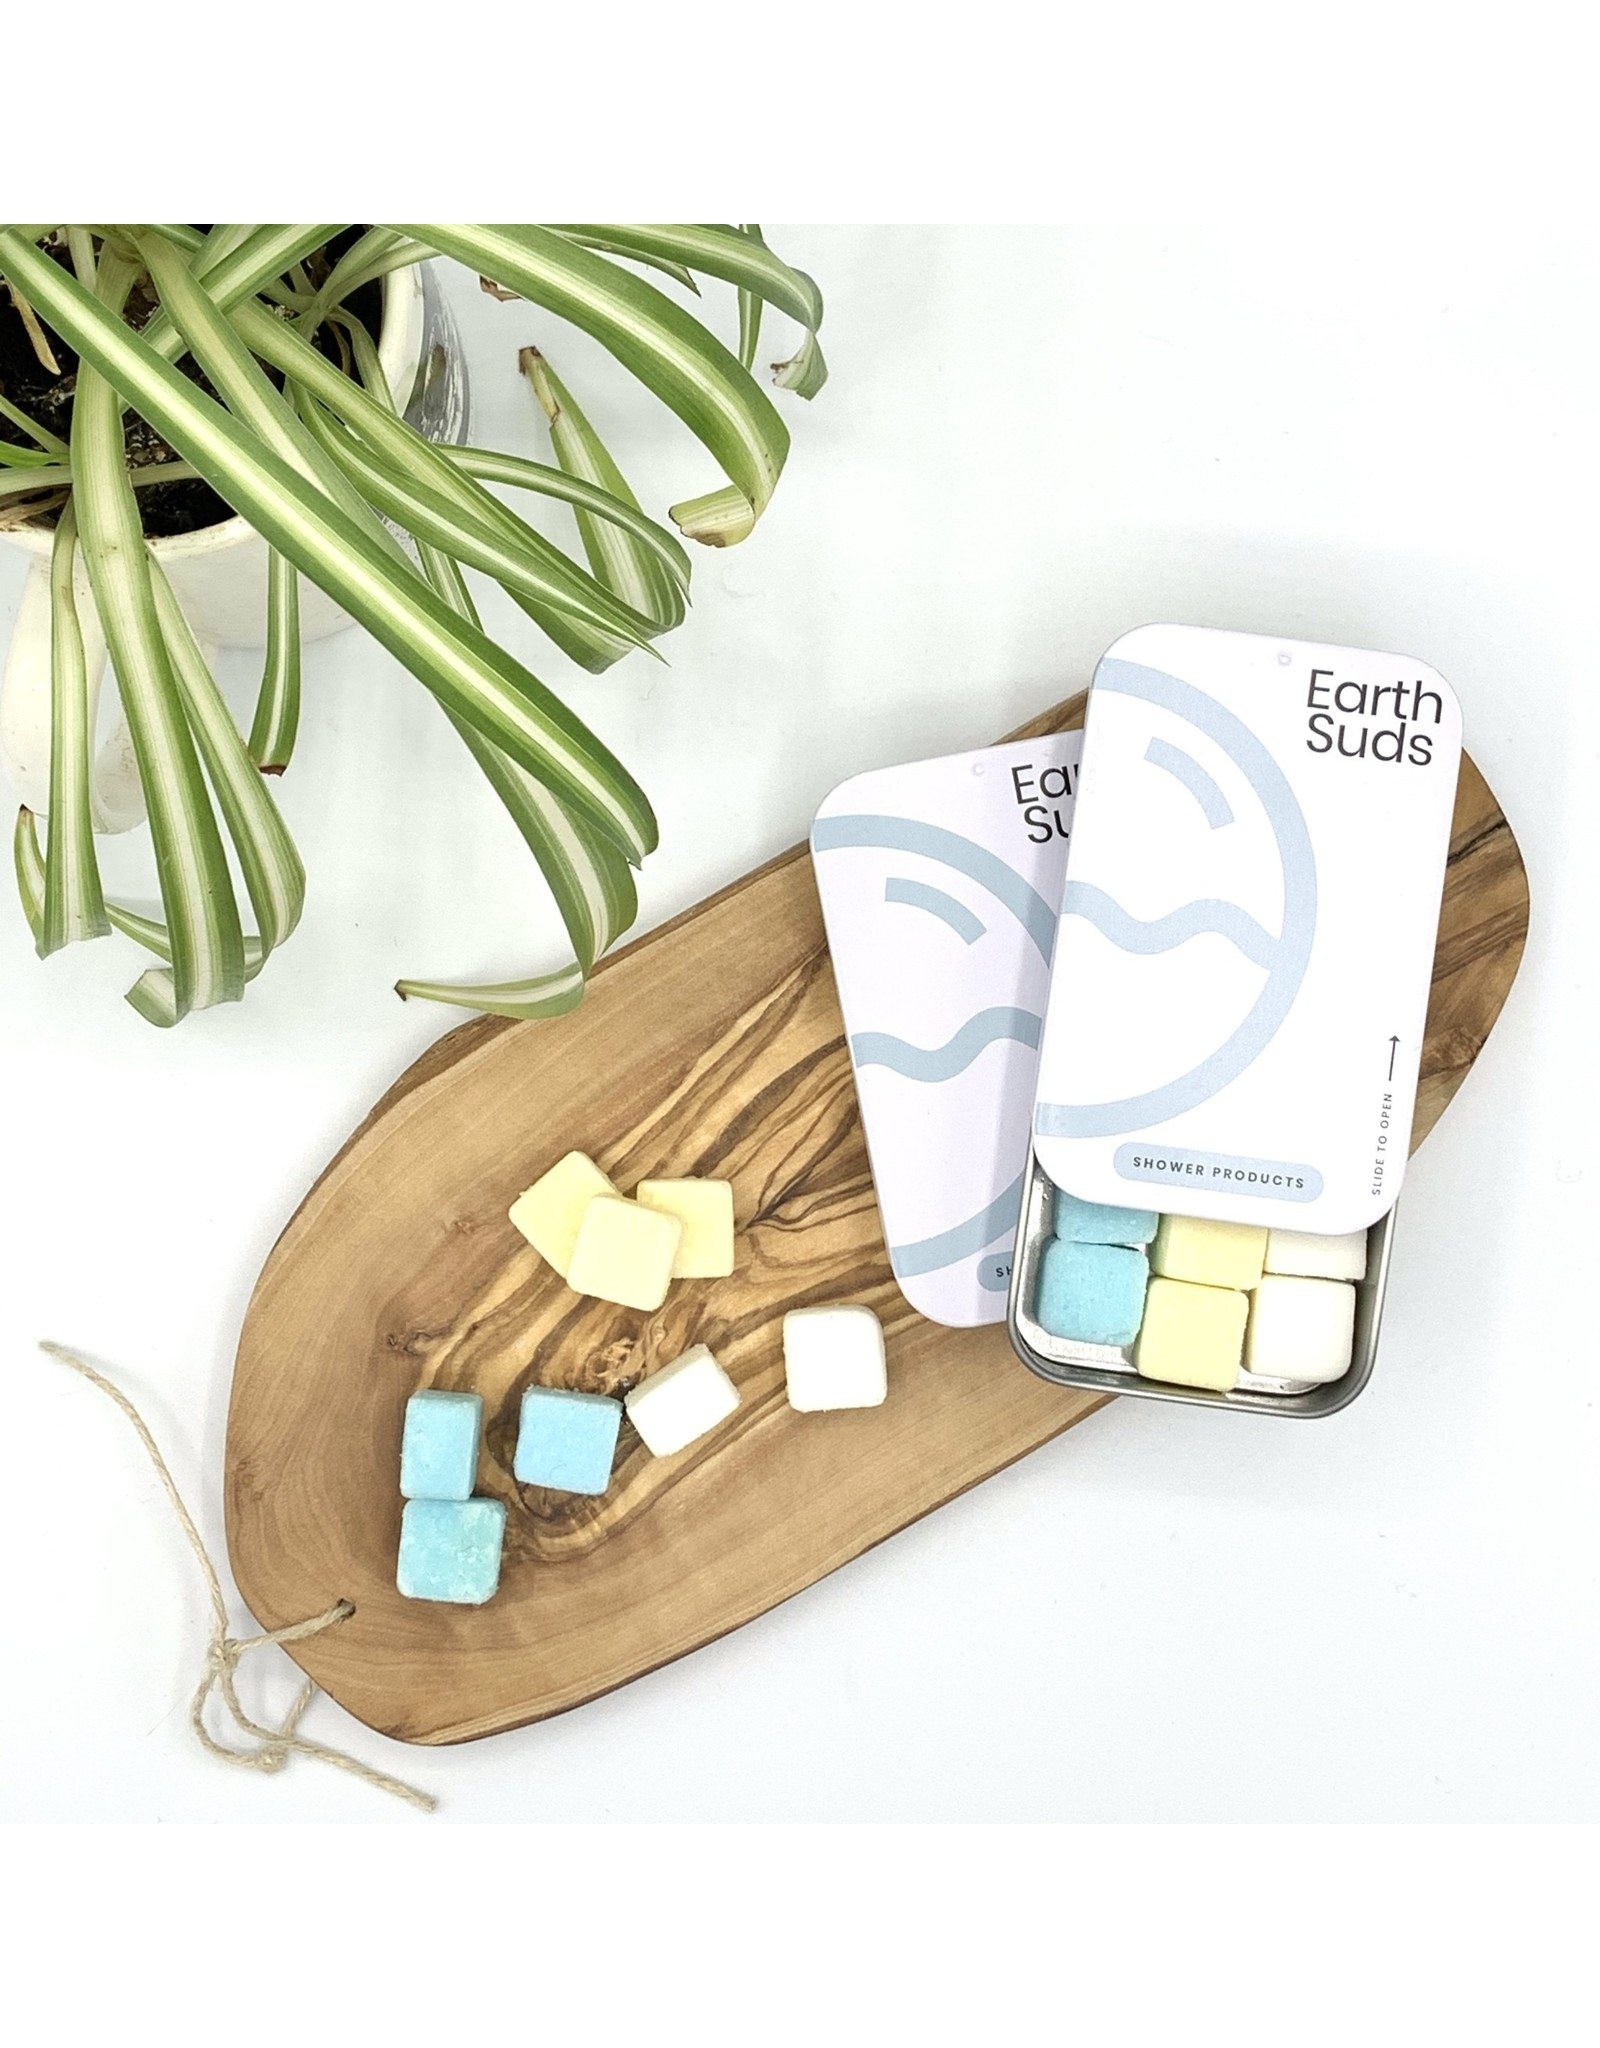 Earth Suds Shower Care Tablets in Travel Case